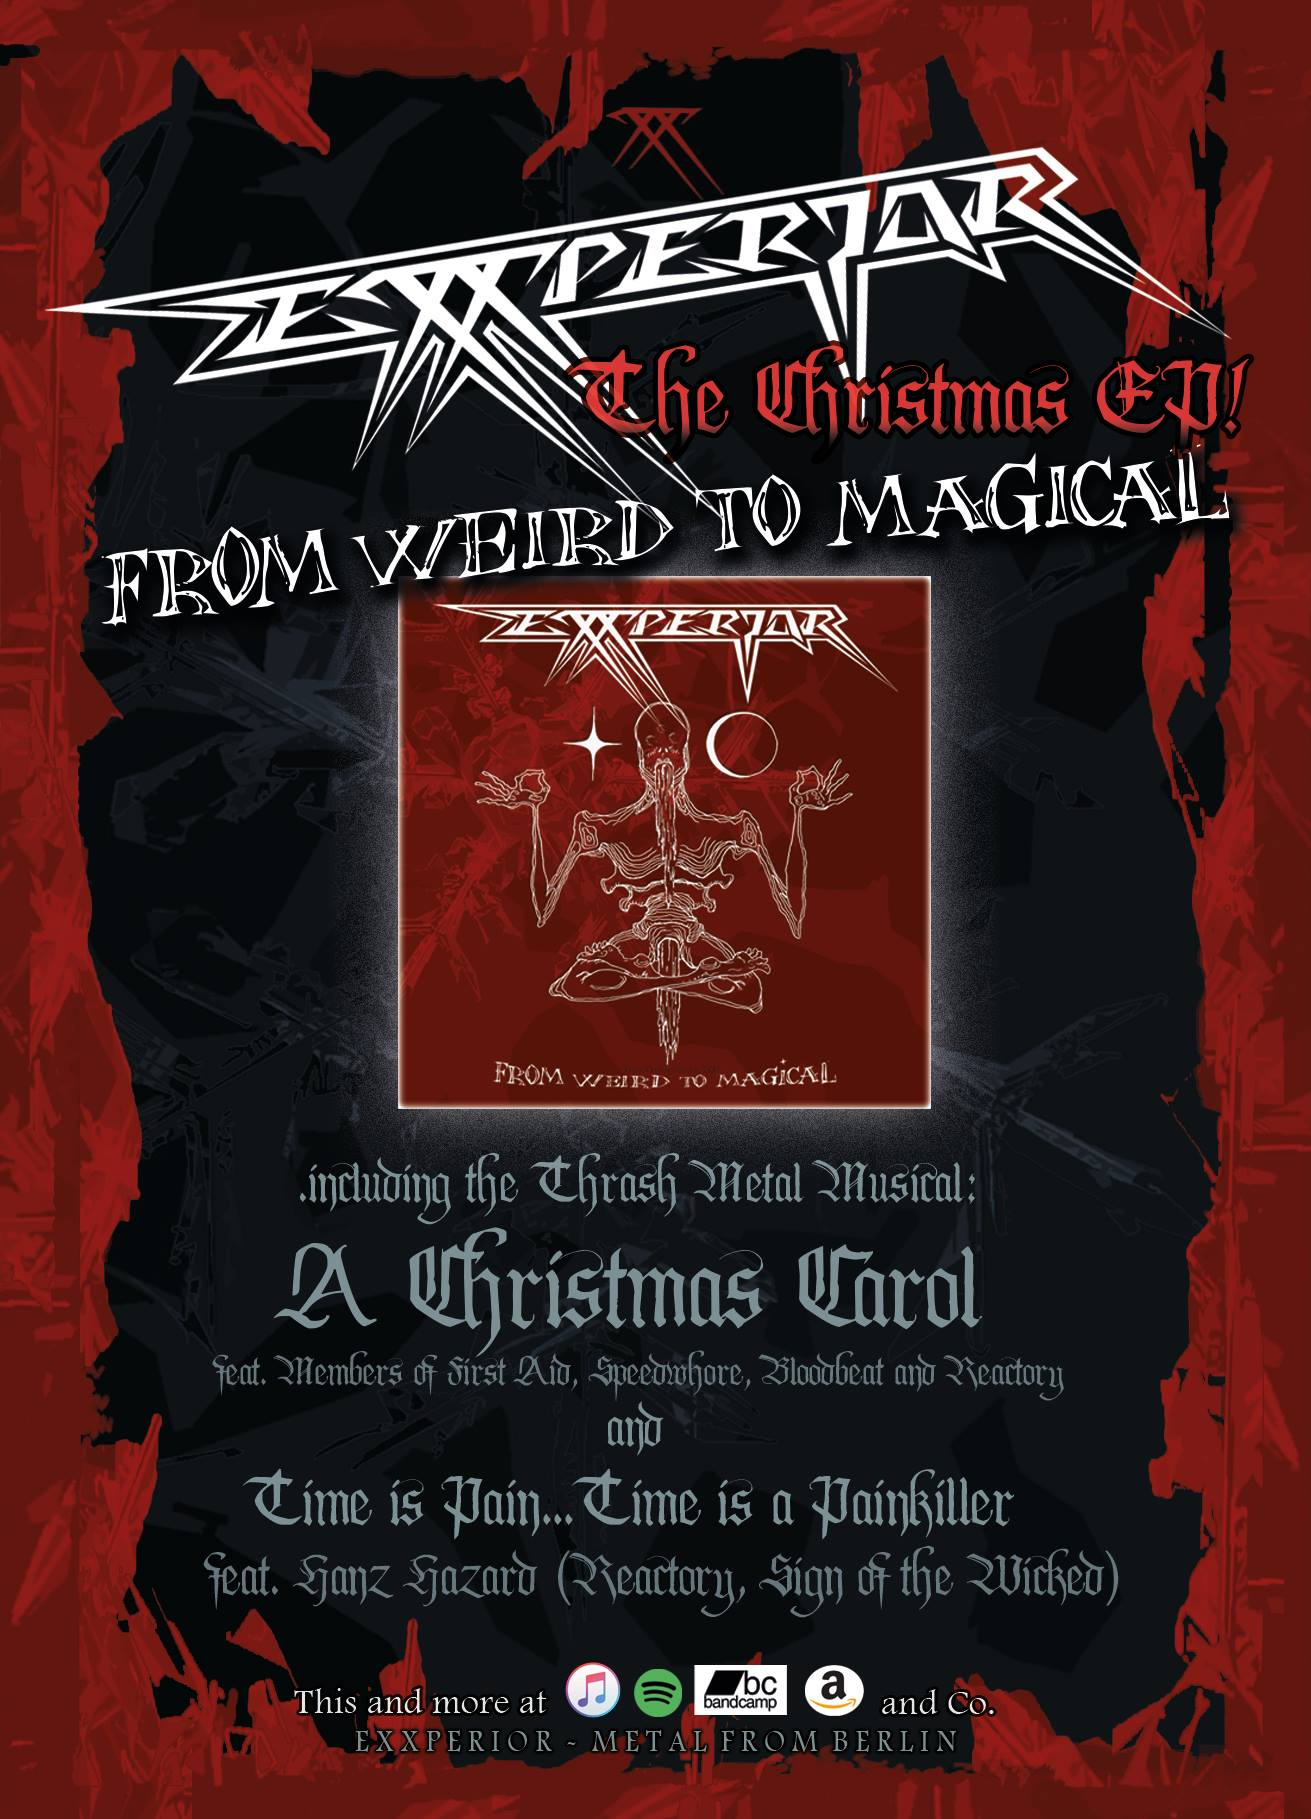 Exxperior Watch The Lyric Video For The Christmas Metal Musical A Christmas Carol Frontview Magazine